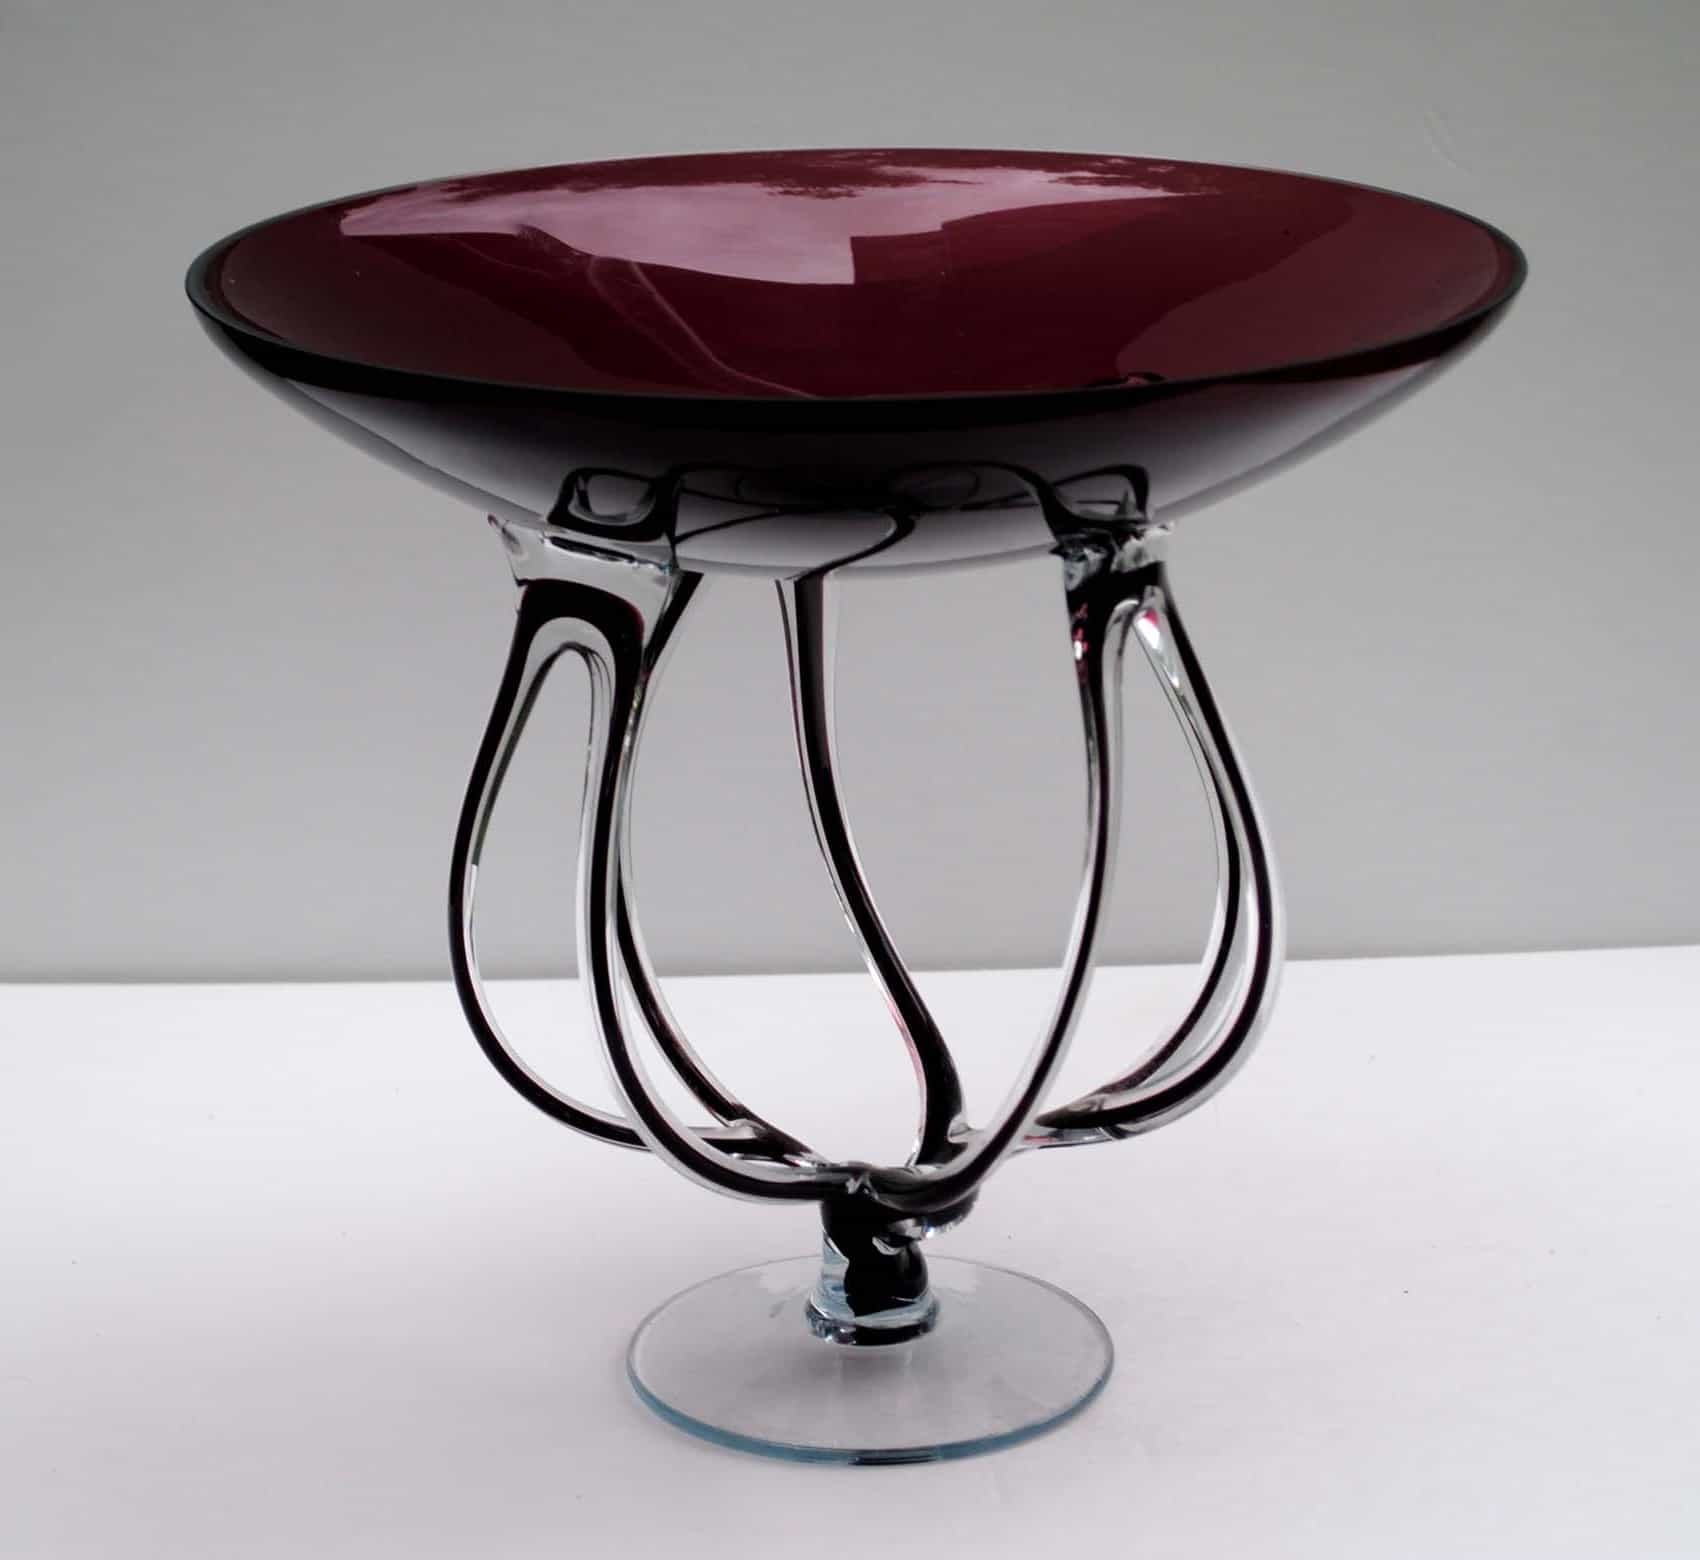 Antique Glass Coffee Table Unusual Shape For Living Room (Image 1 of 15)